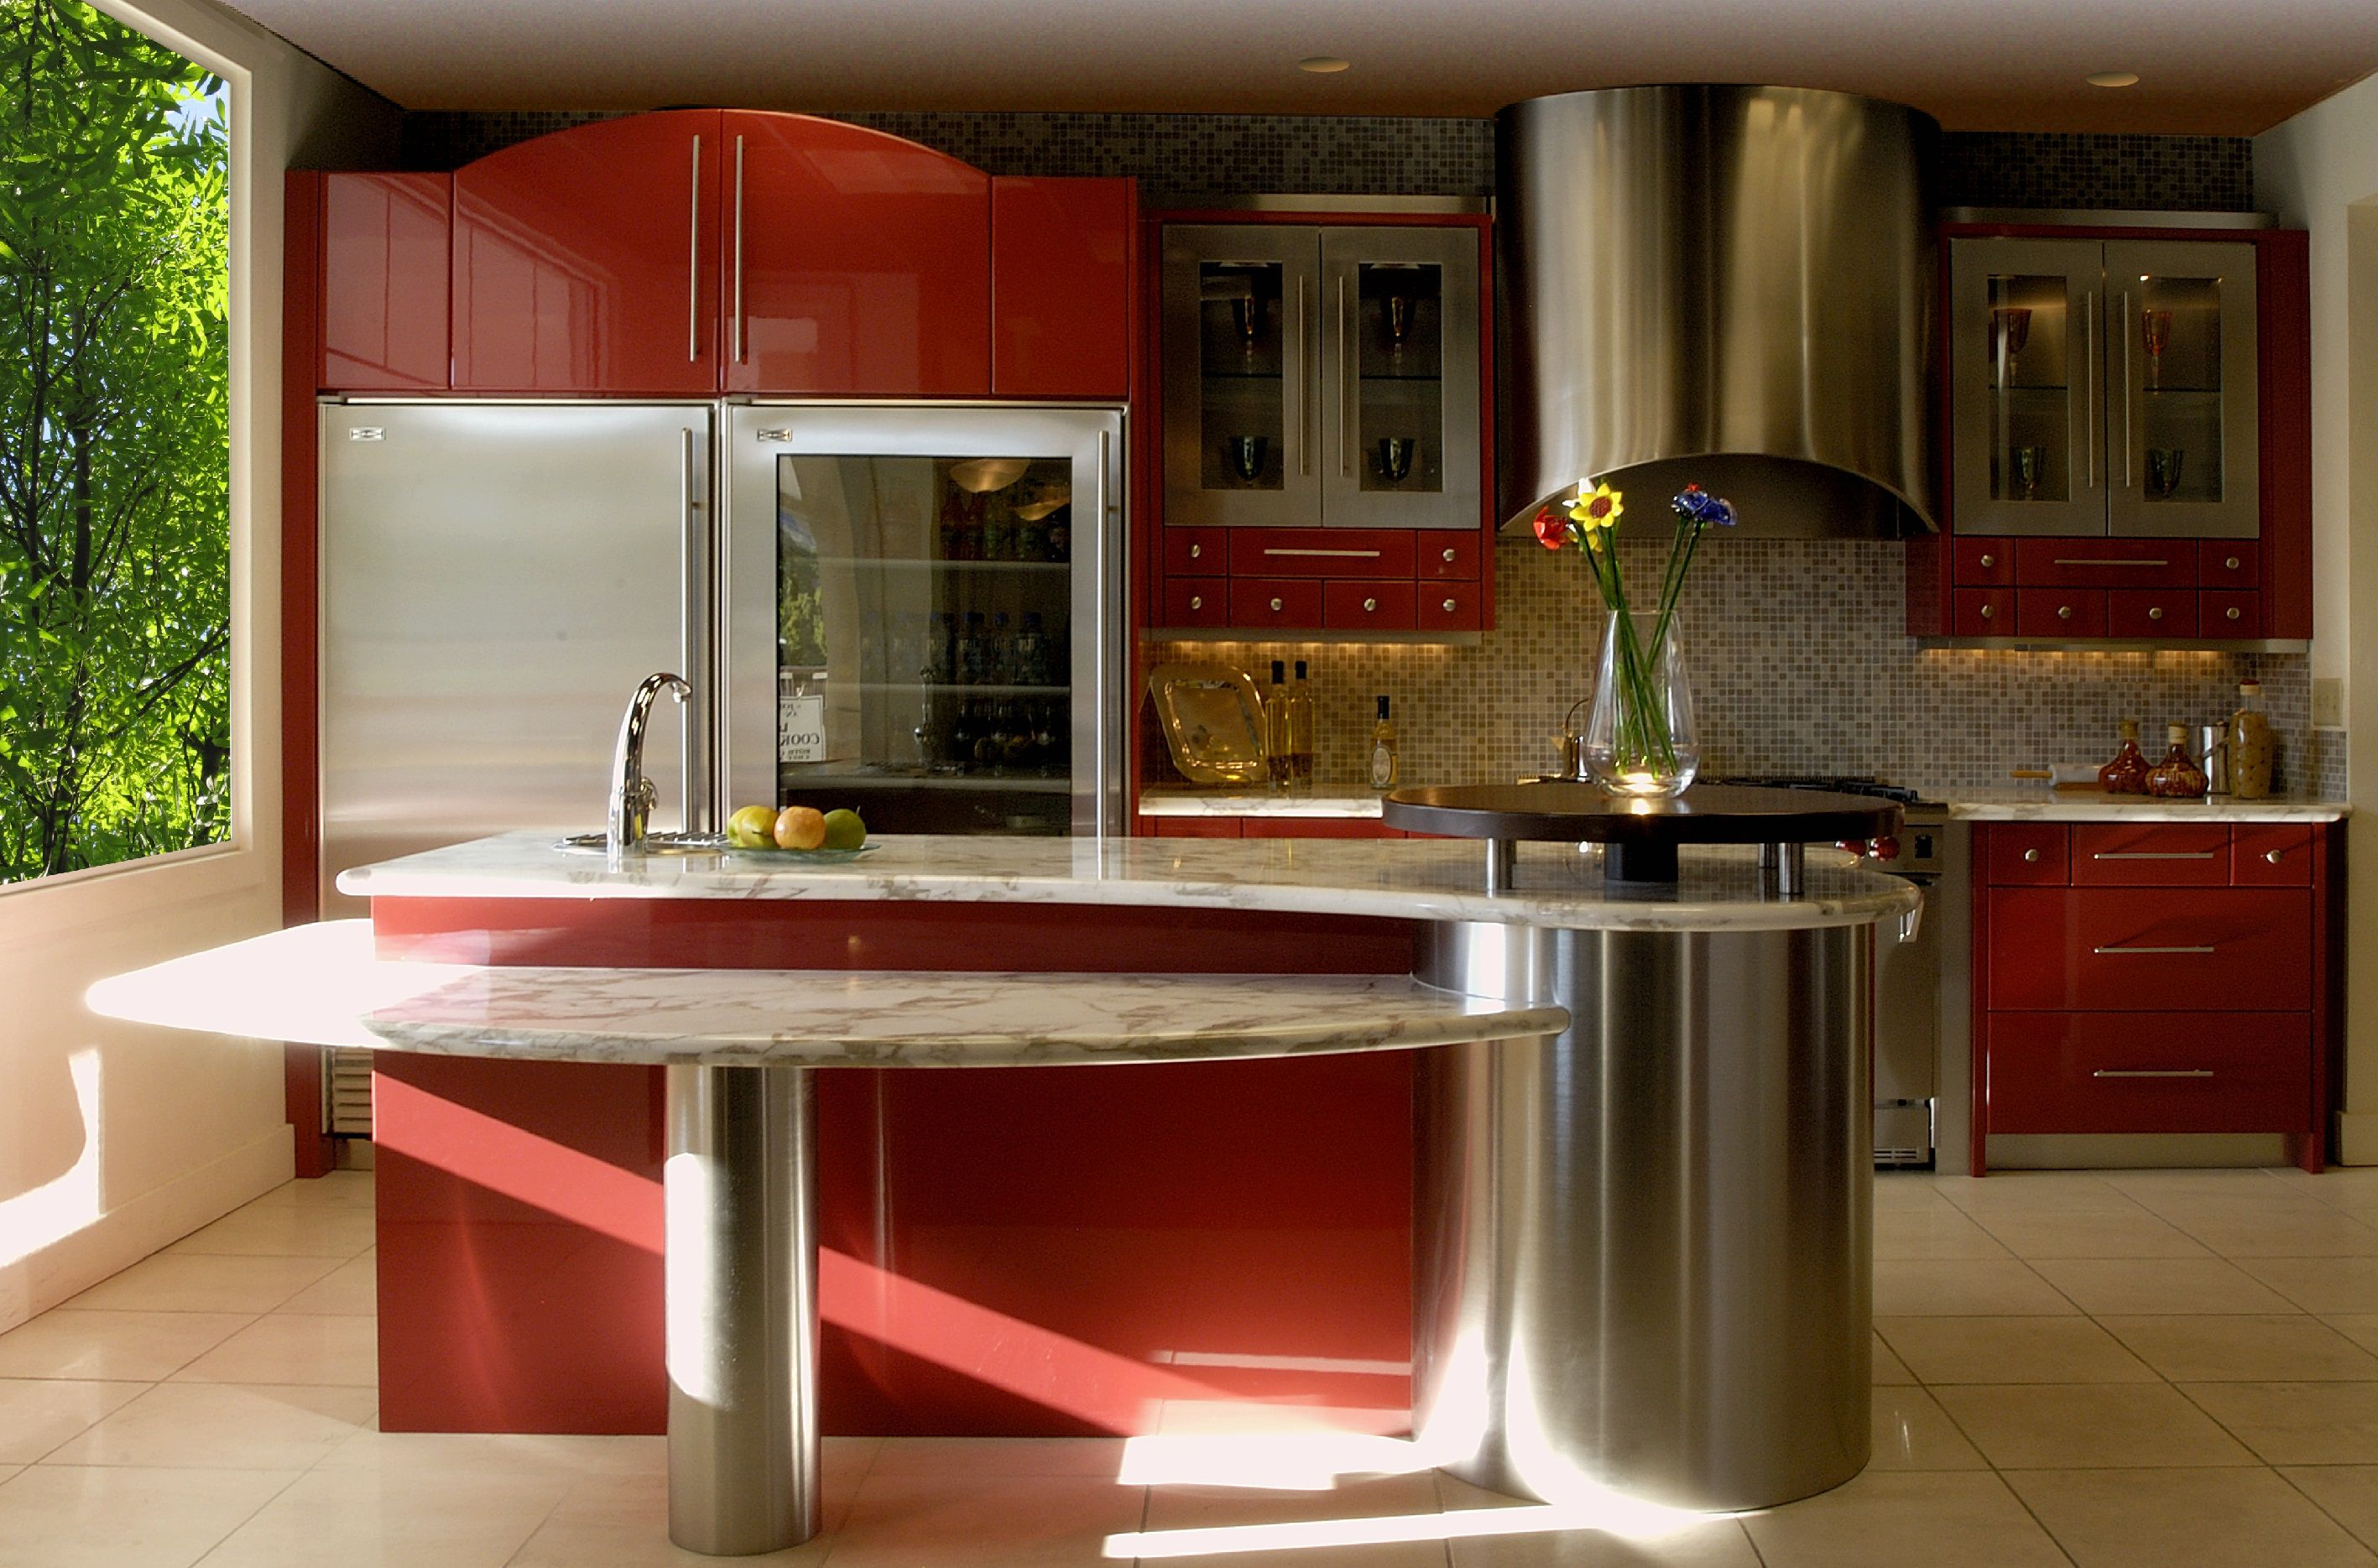 pleasing-interior-for-spacious-room-using-modern-red-kitchen-cabinets